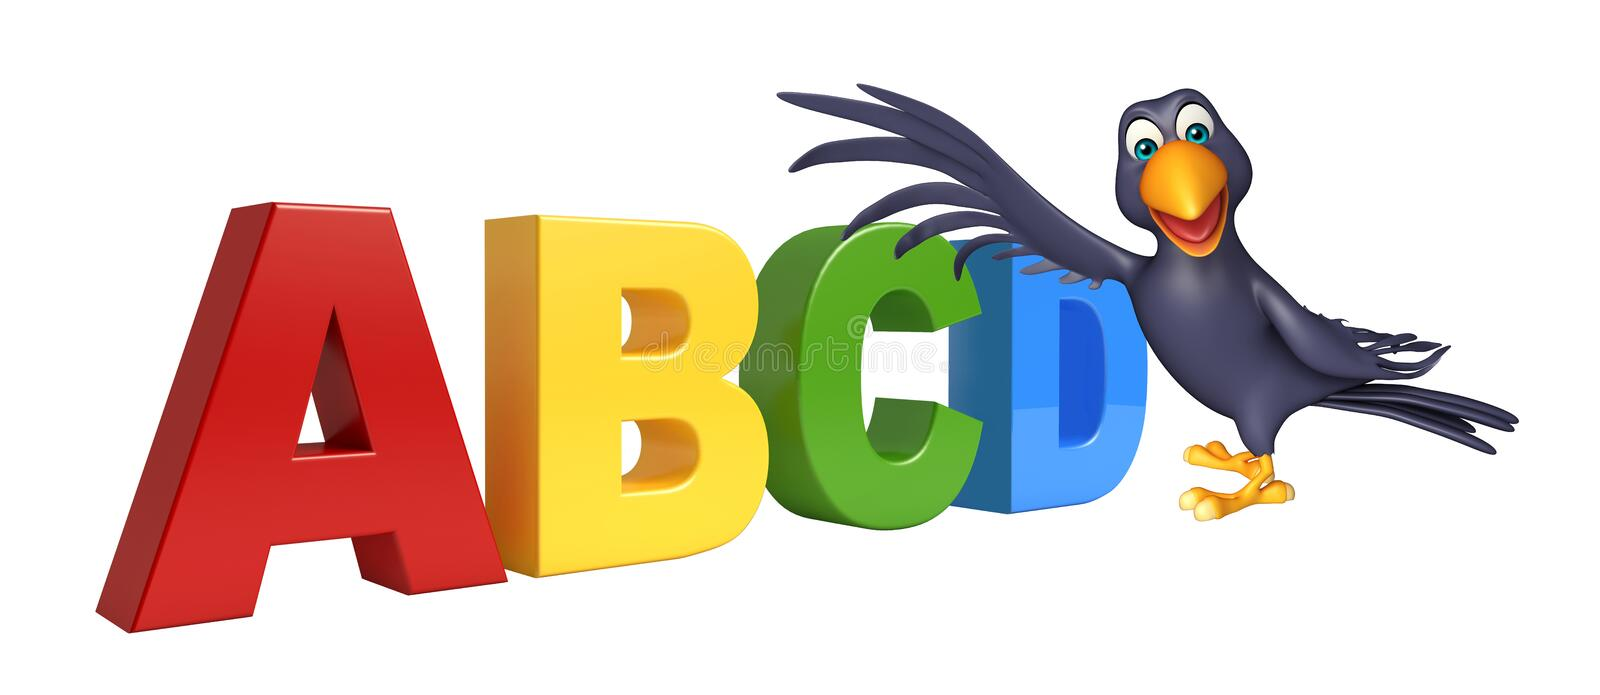 Crow cartoon character with abcd sign. 3d rendered illustration of Crow cartoon character with abcd sign vector illustration